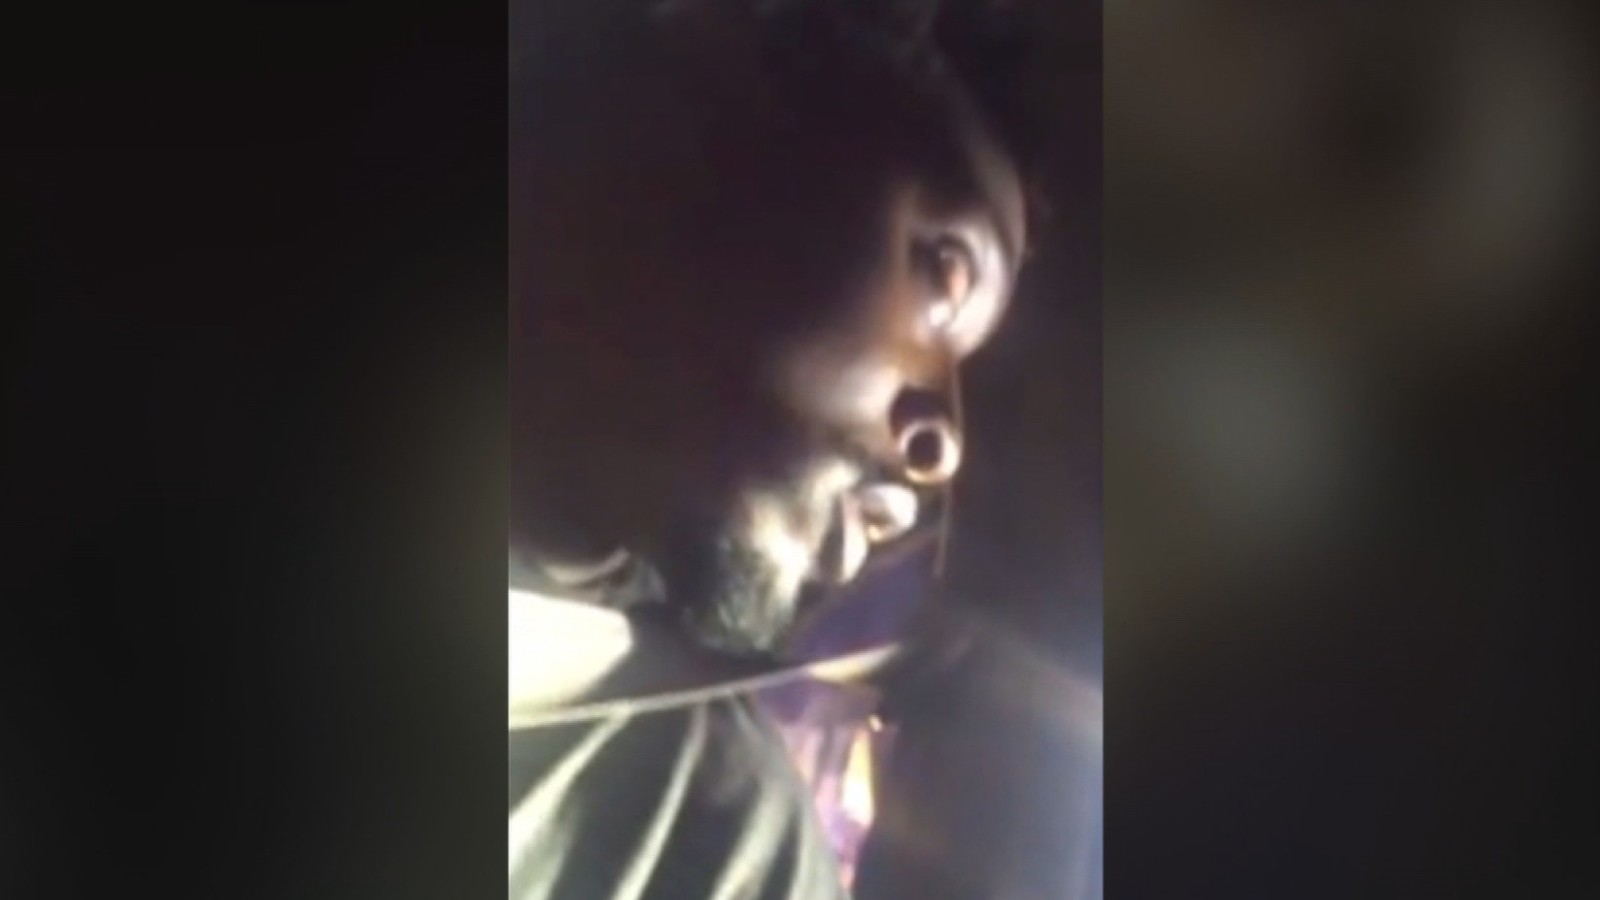 Ohio Officer Direct Eye Contact 1 Reason For Ticket Cnn